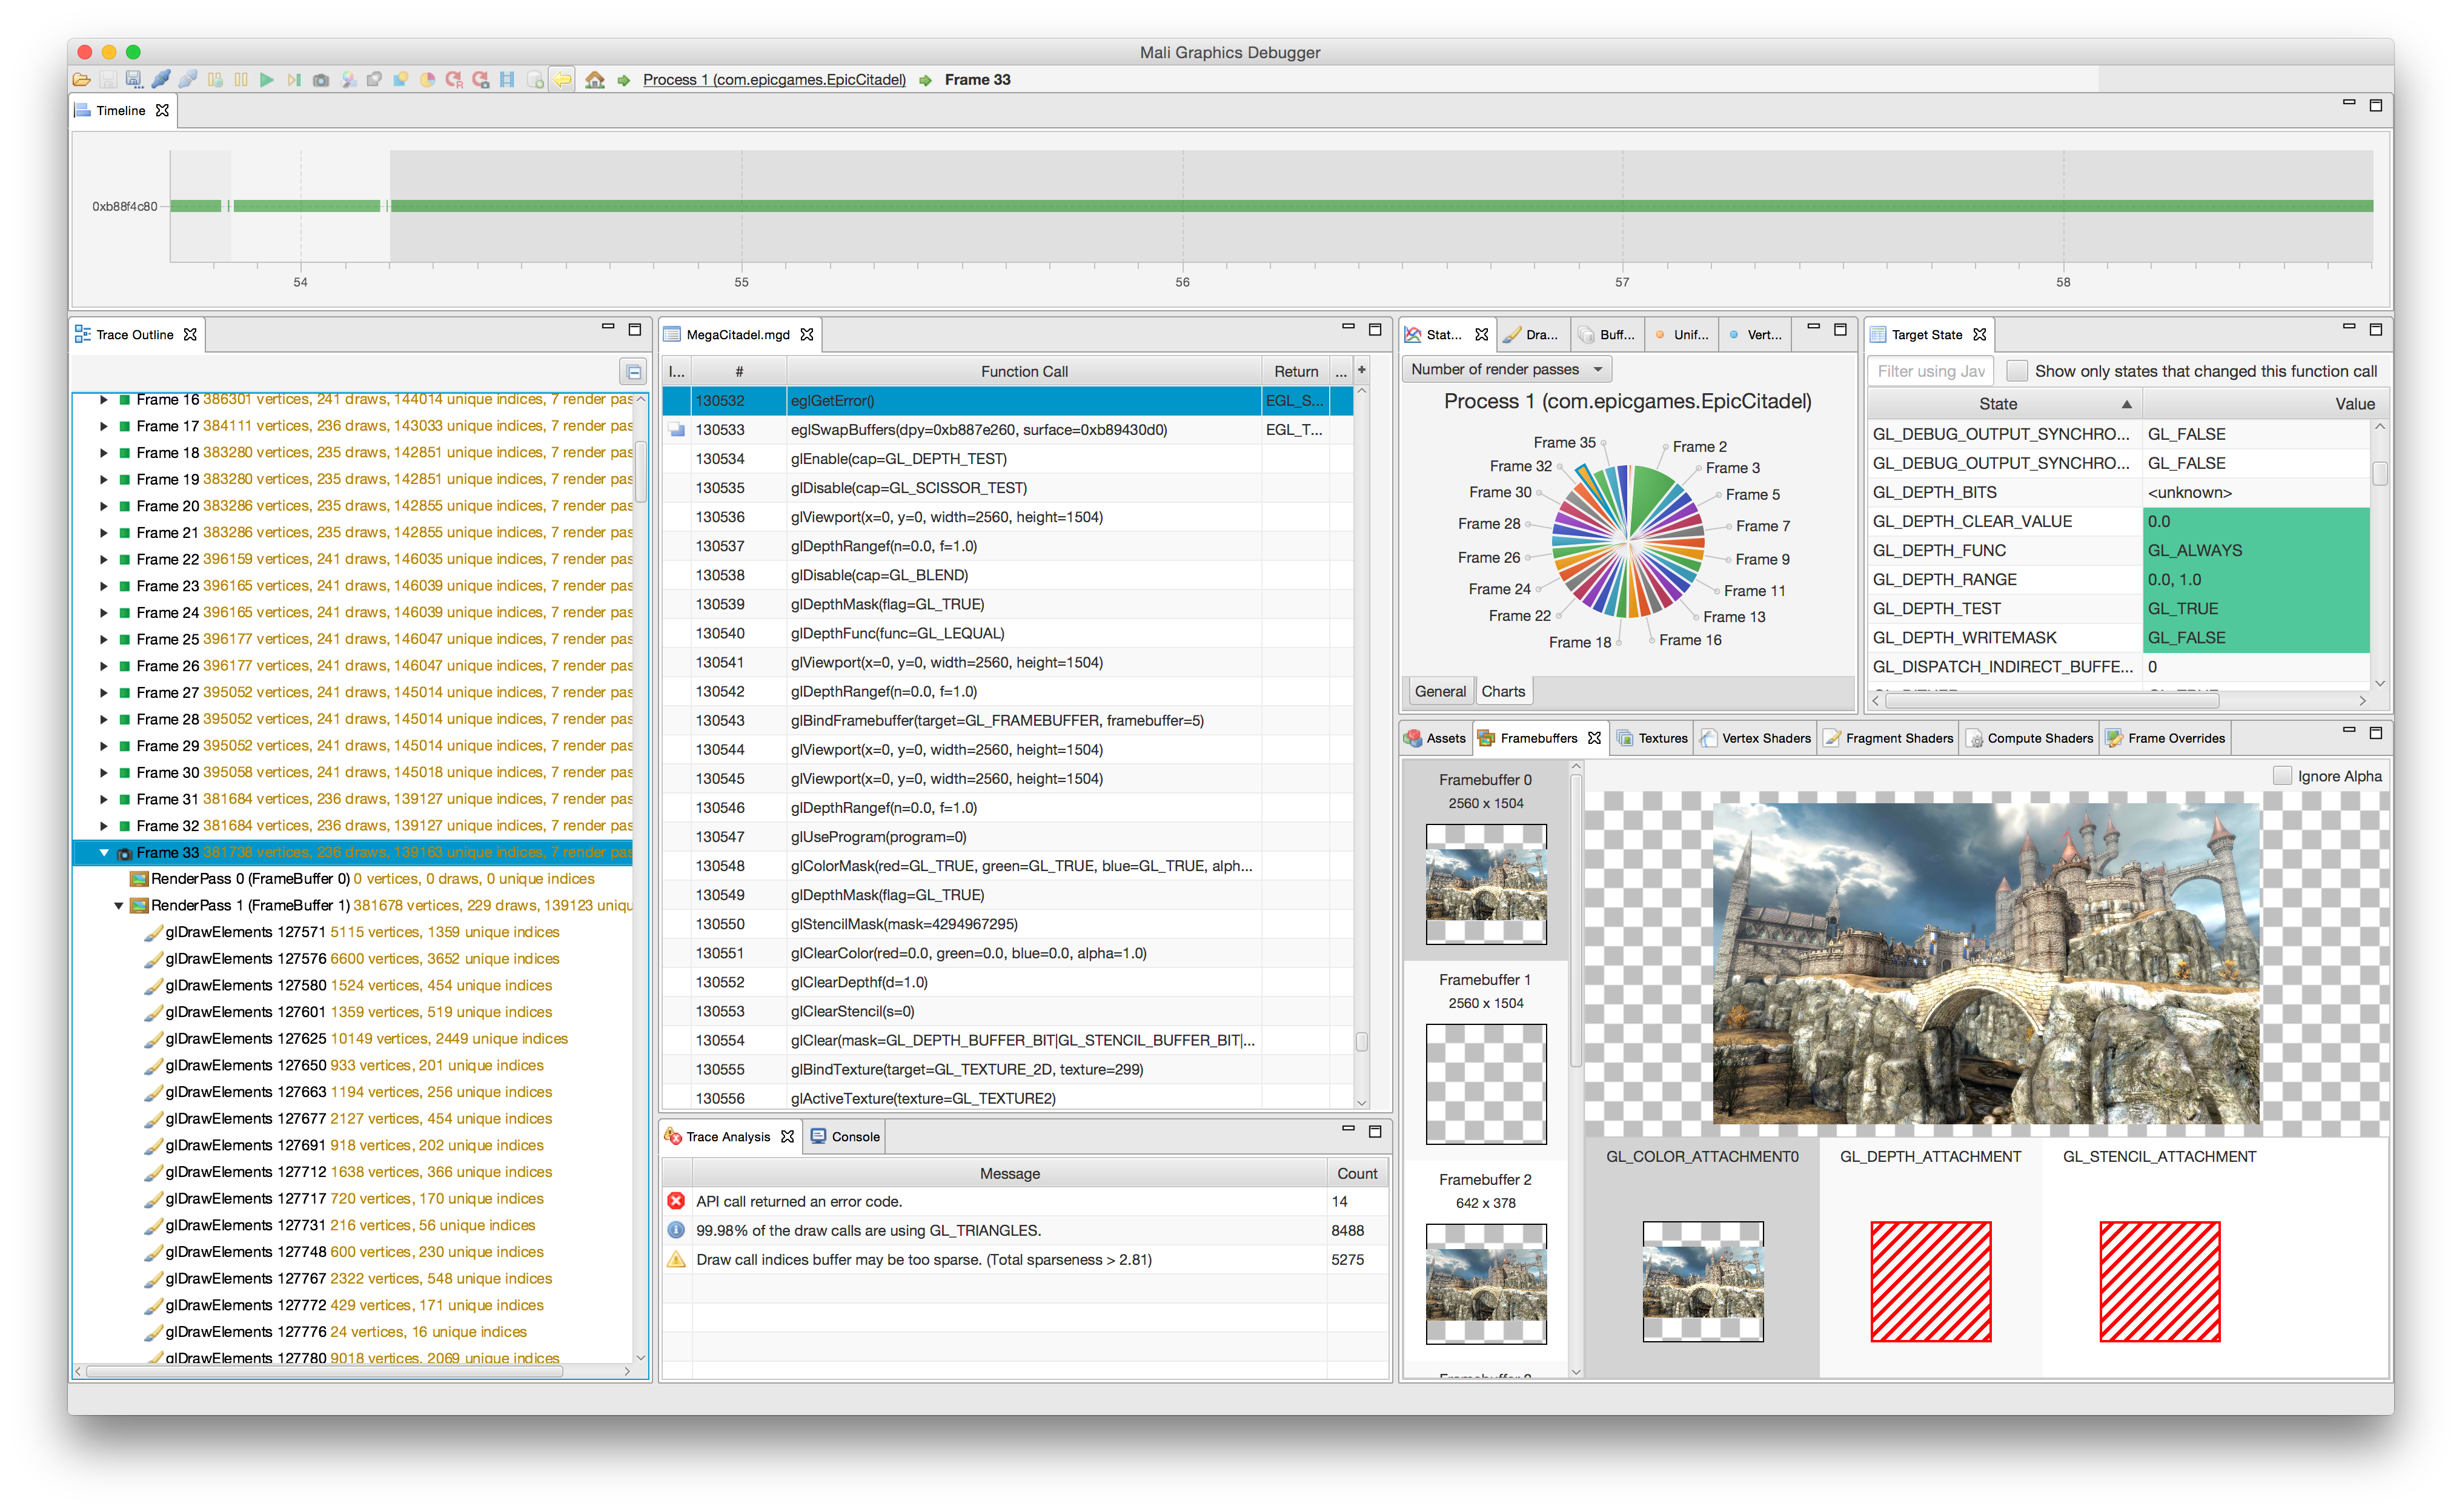 Mali Graphics Debugger v3